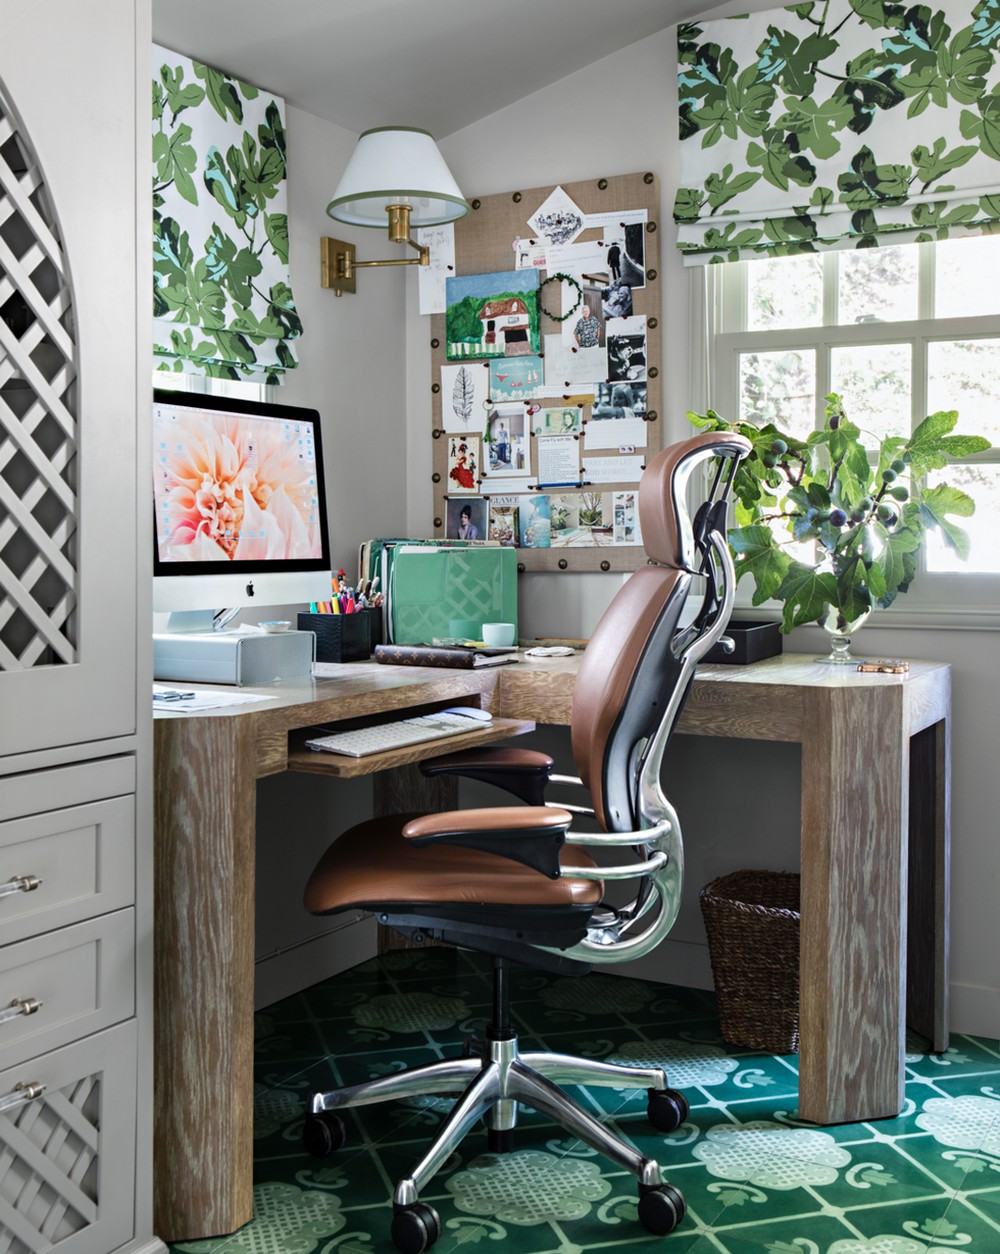 Boast Your Work Creativity by Upgrading Your Home Office Decoration 5 home office decoration Boost Your Work Creativity by Upgrading Your Home Office Decoration Boast Your Work Creativity by Upgrading Your Home Office Decoration 5